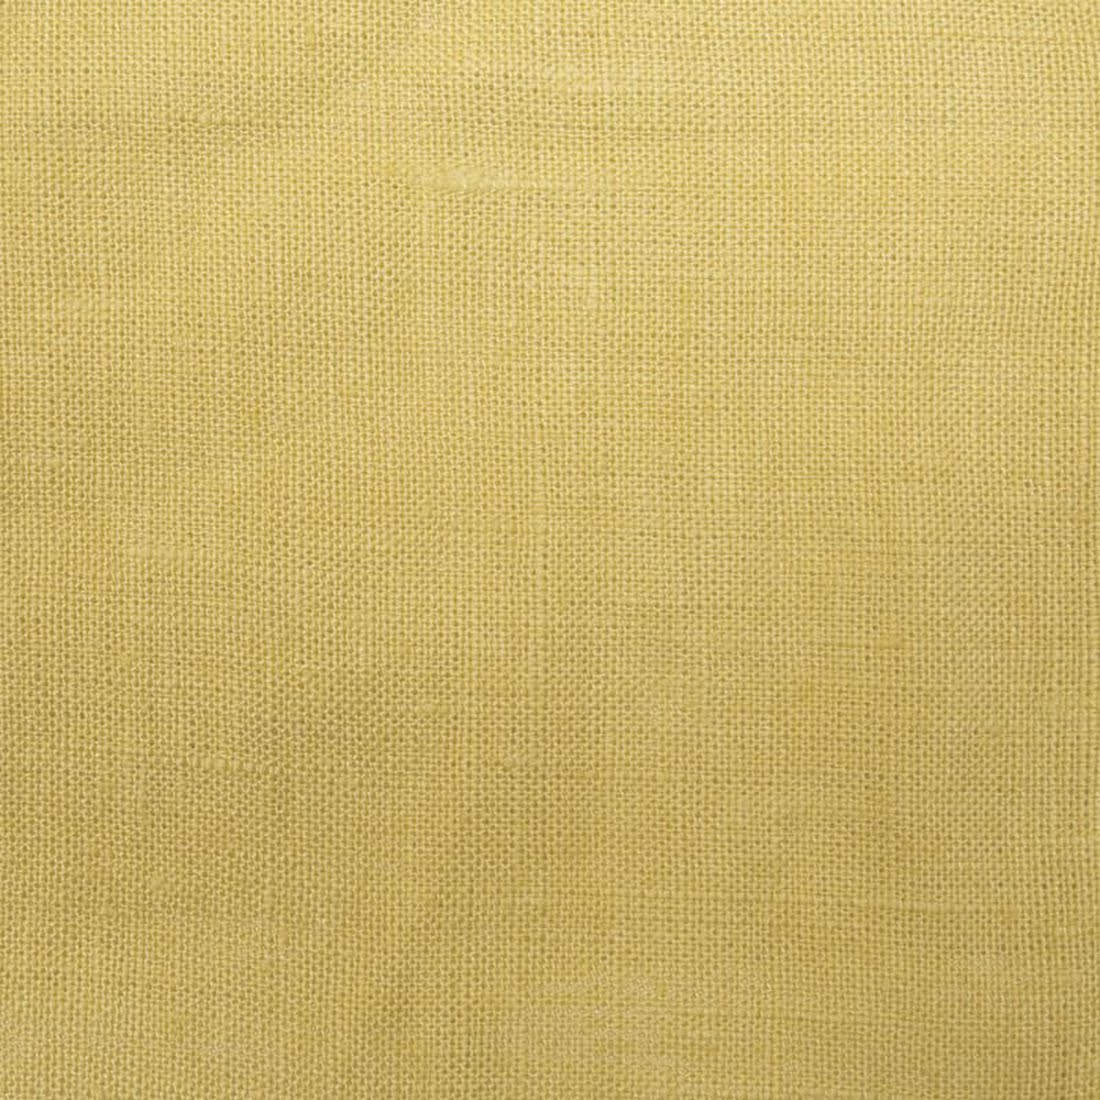 Beschichteter Leinen  - Basic Dusty Yellow